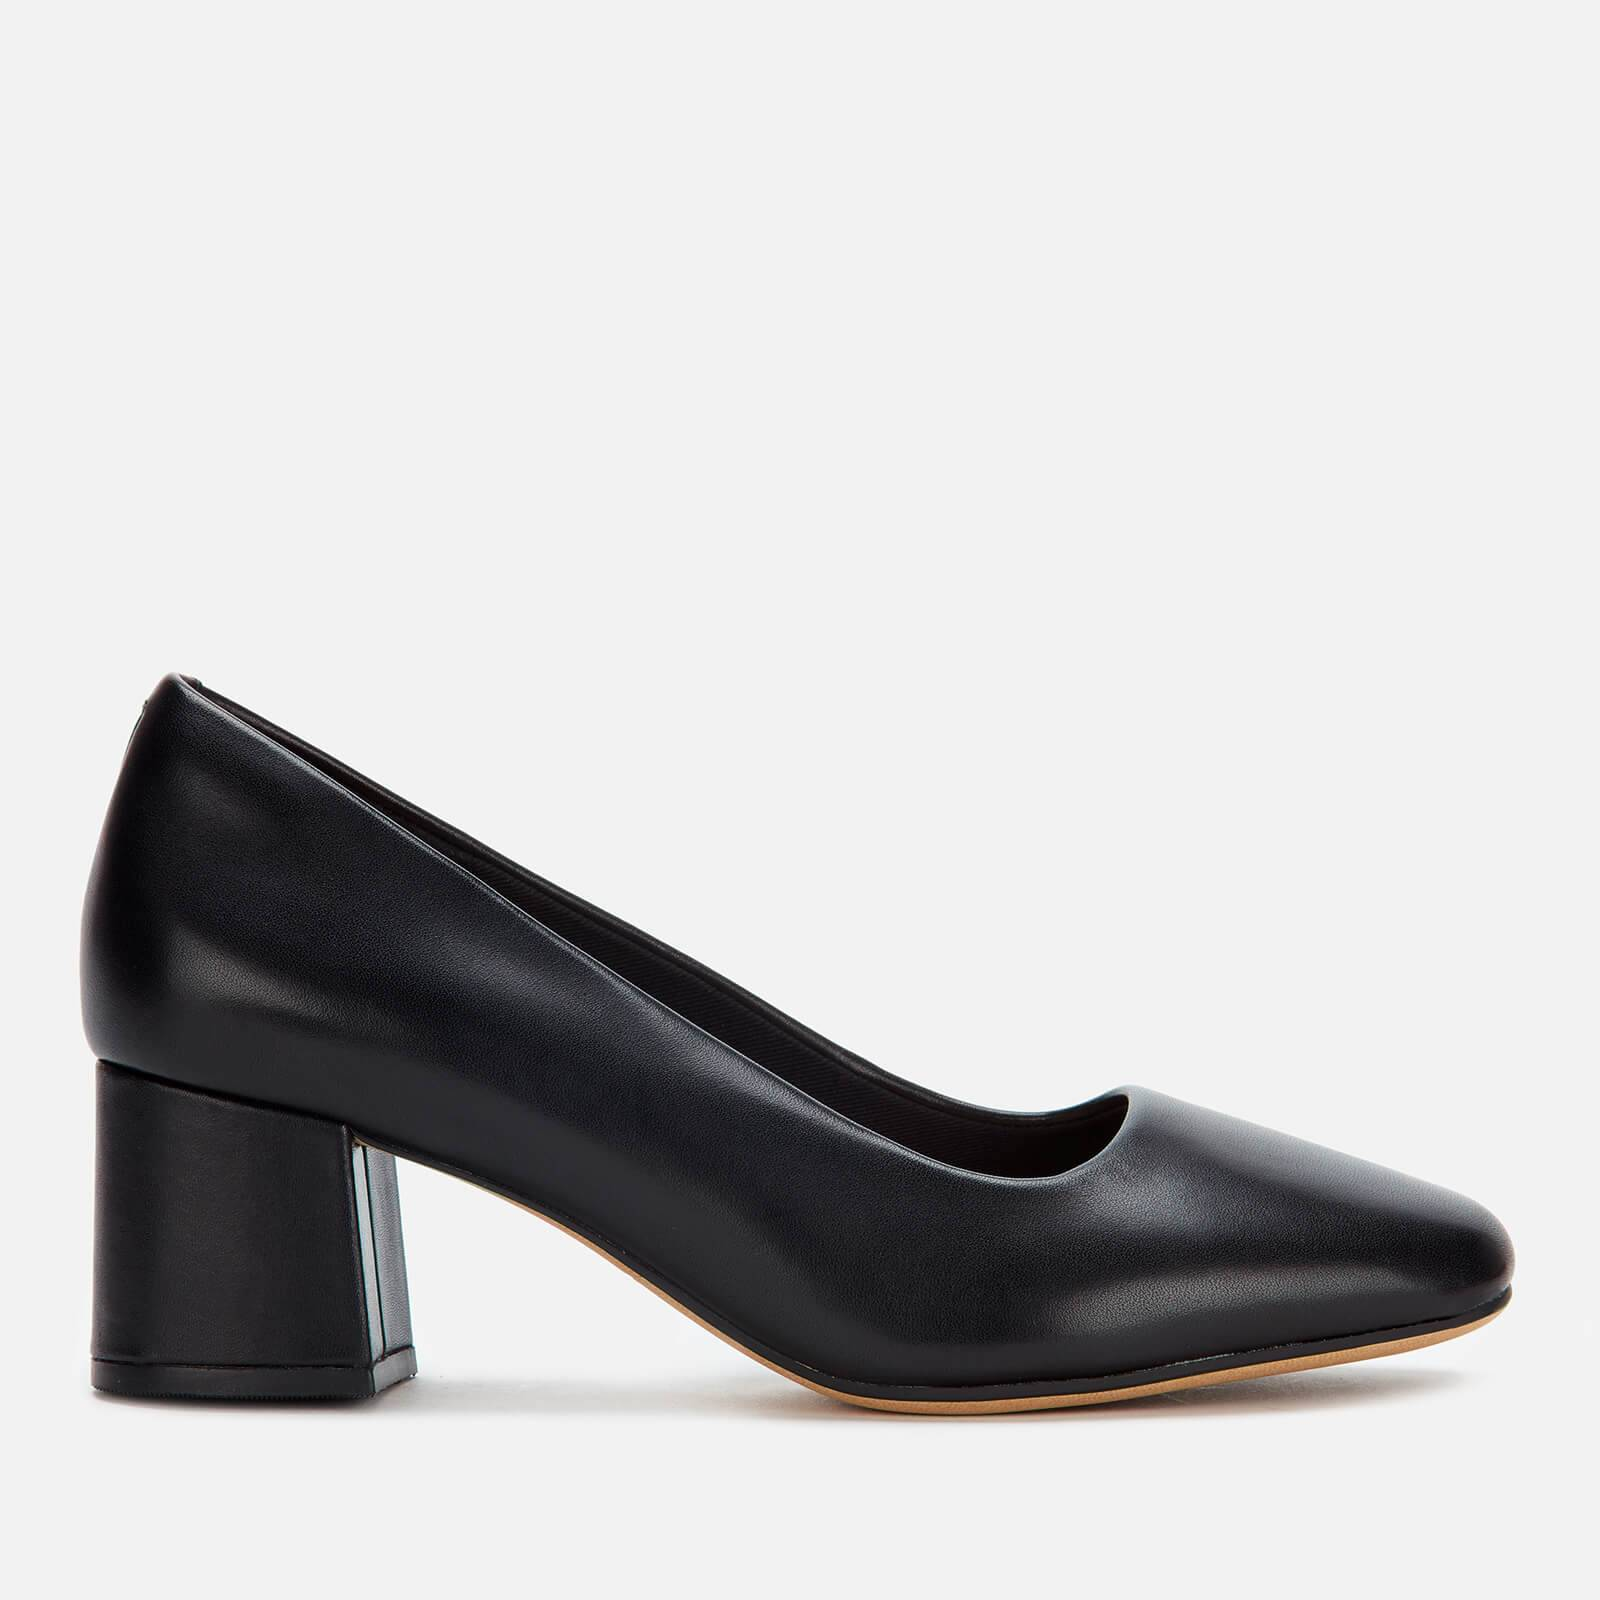 Clarks Women's Sheer Rose Leather Block Heeled Shoes - Black - UK 3